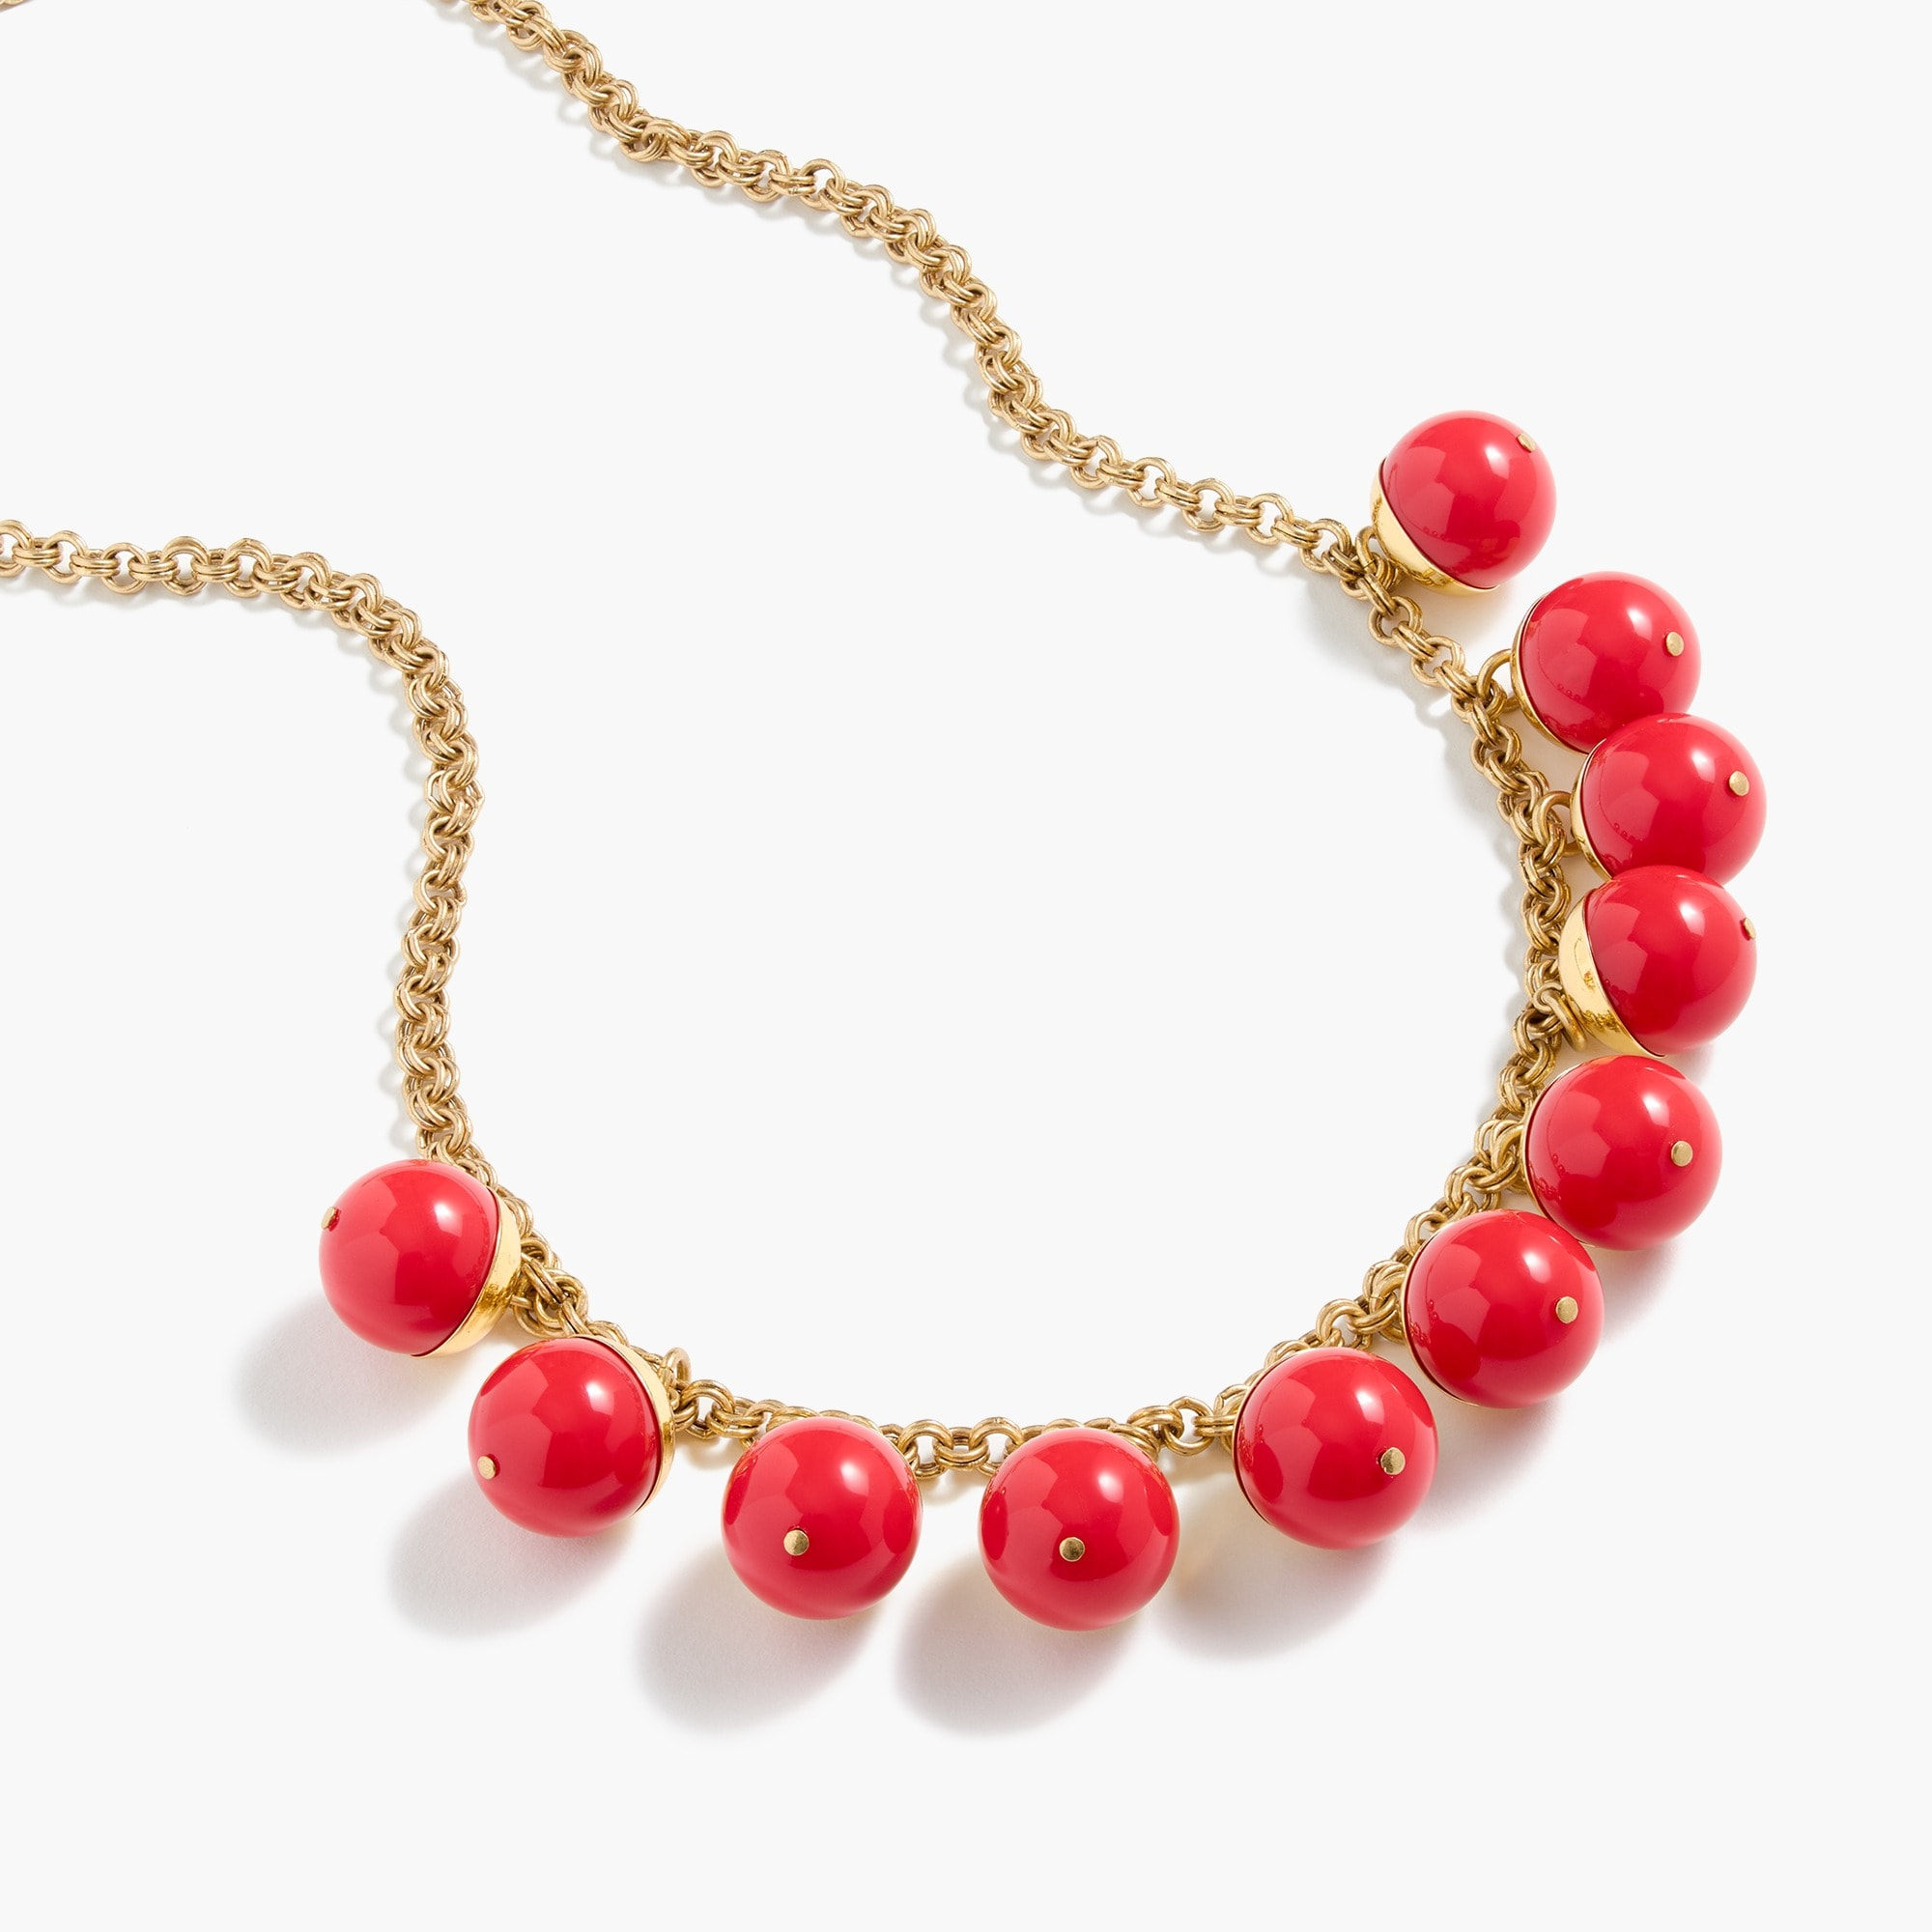 beaded gold necklace : women necklaces